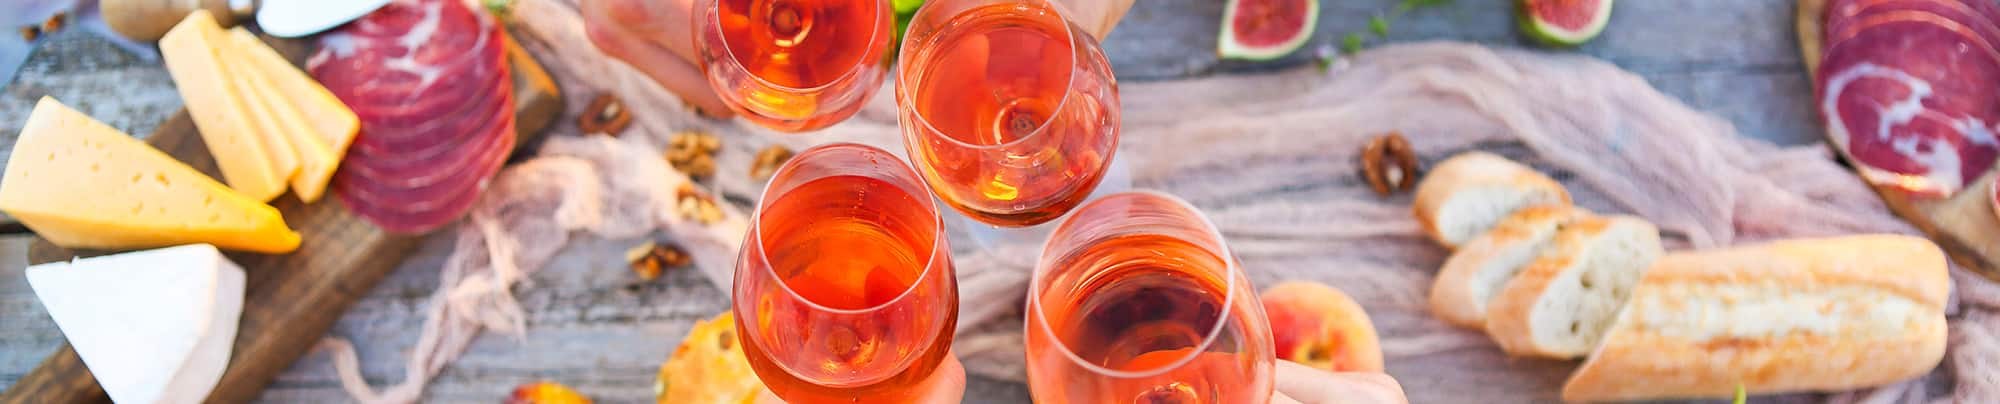 <span class='contentError'>Missing content for <strong>'featureImageAlt'</strong> in item <strong>'wine-styles-rose'</strong></span>